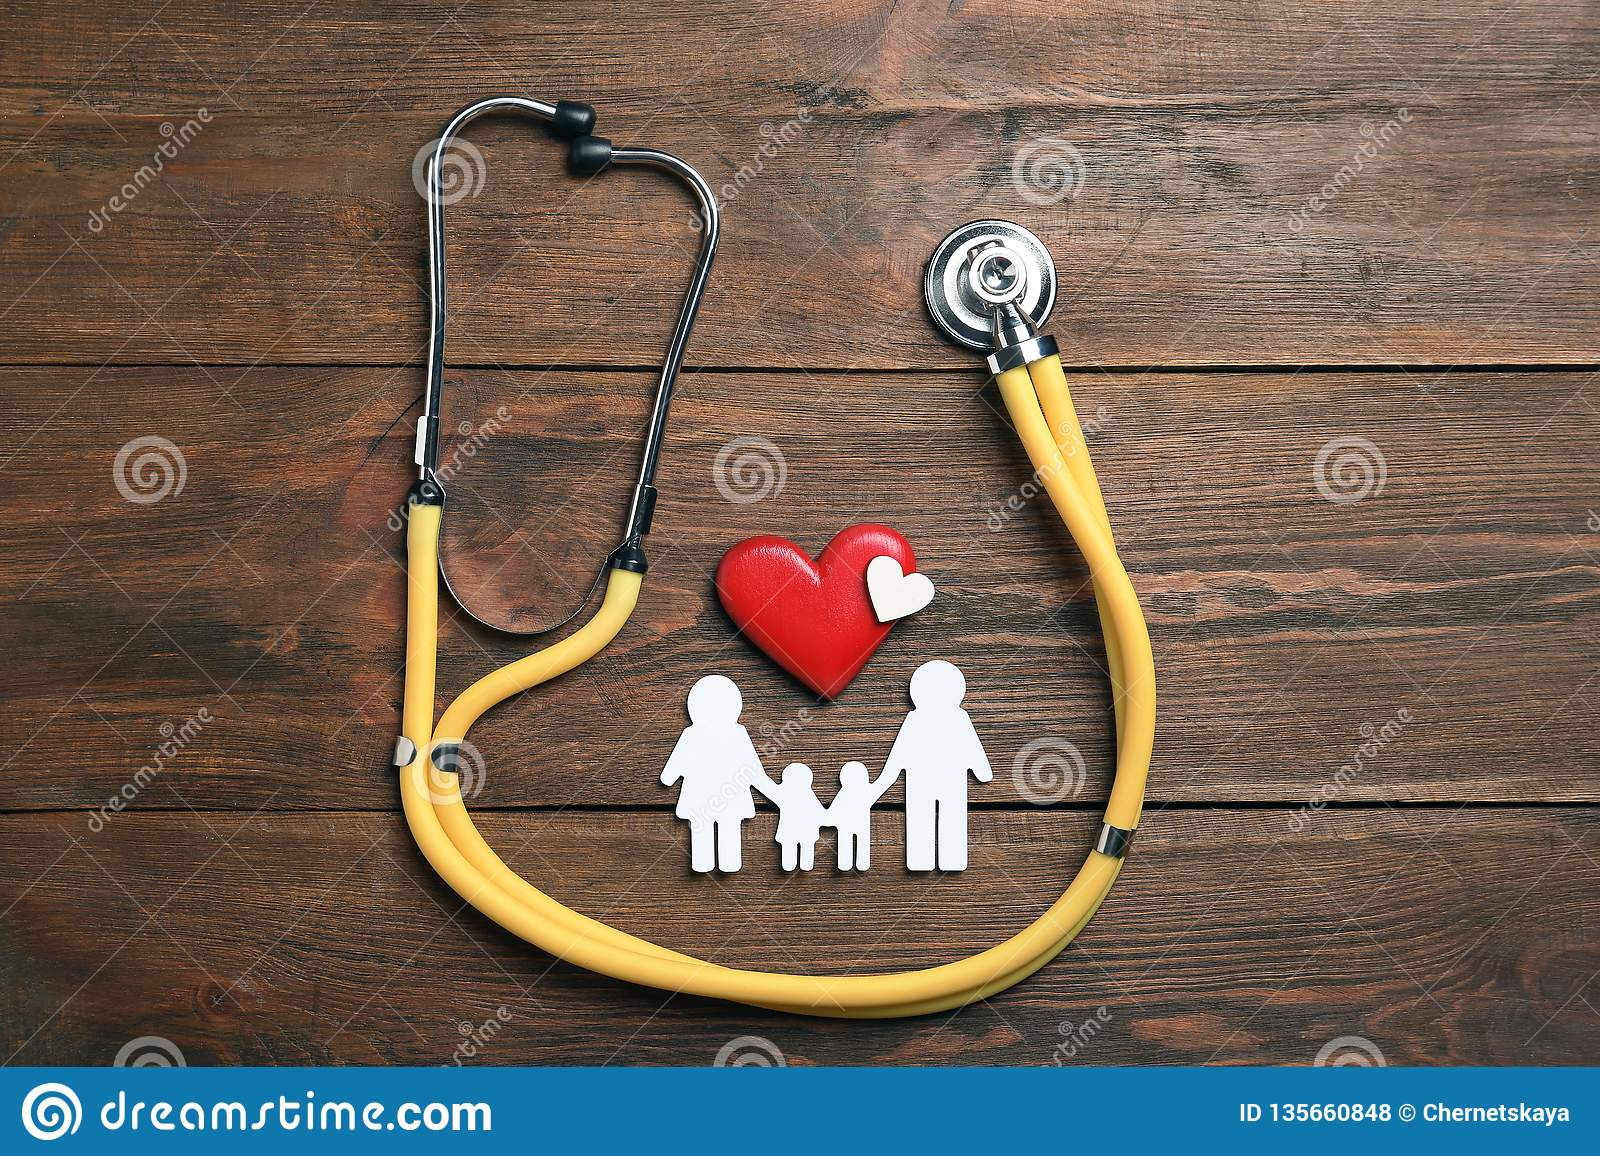 Flat lay composition with hearts, stethoscope and family silhouette on wooden background. Life insurance